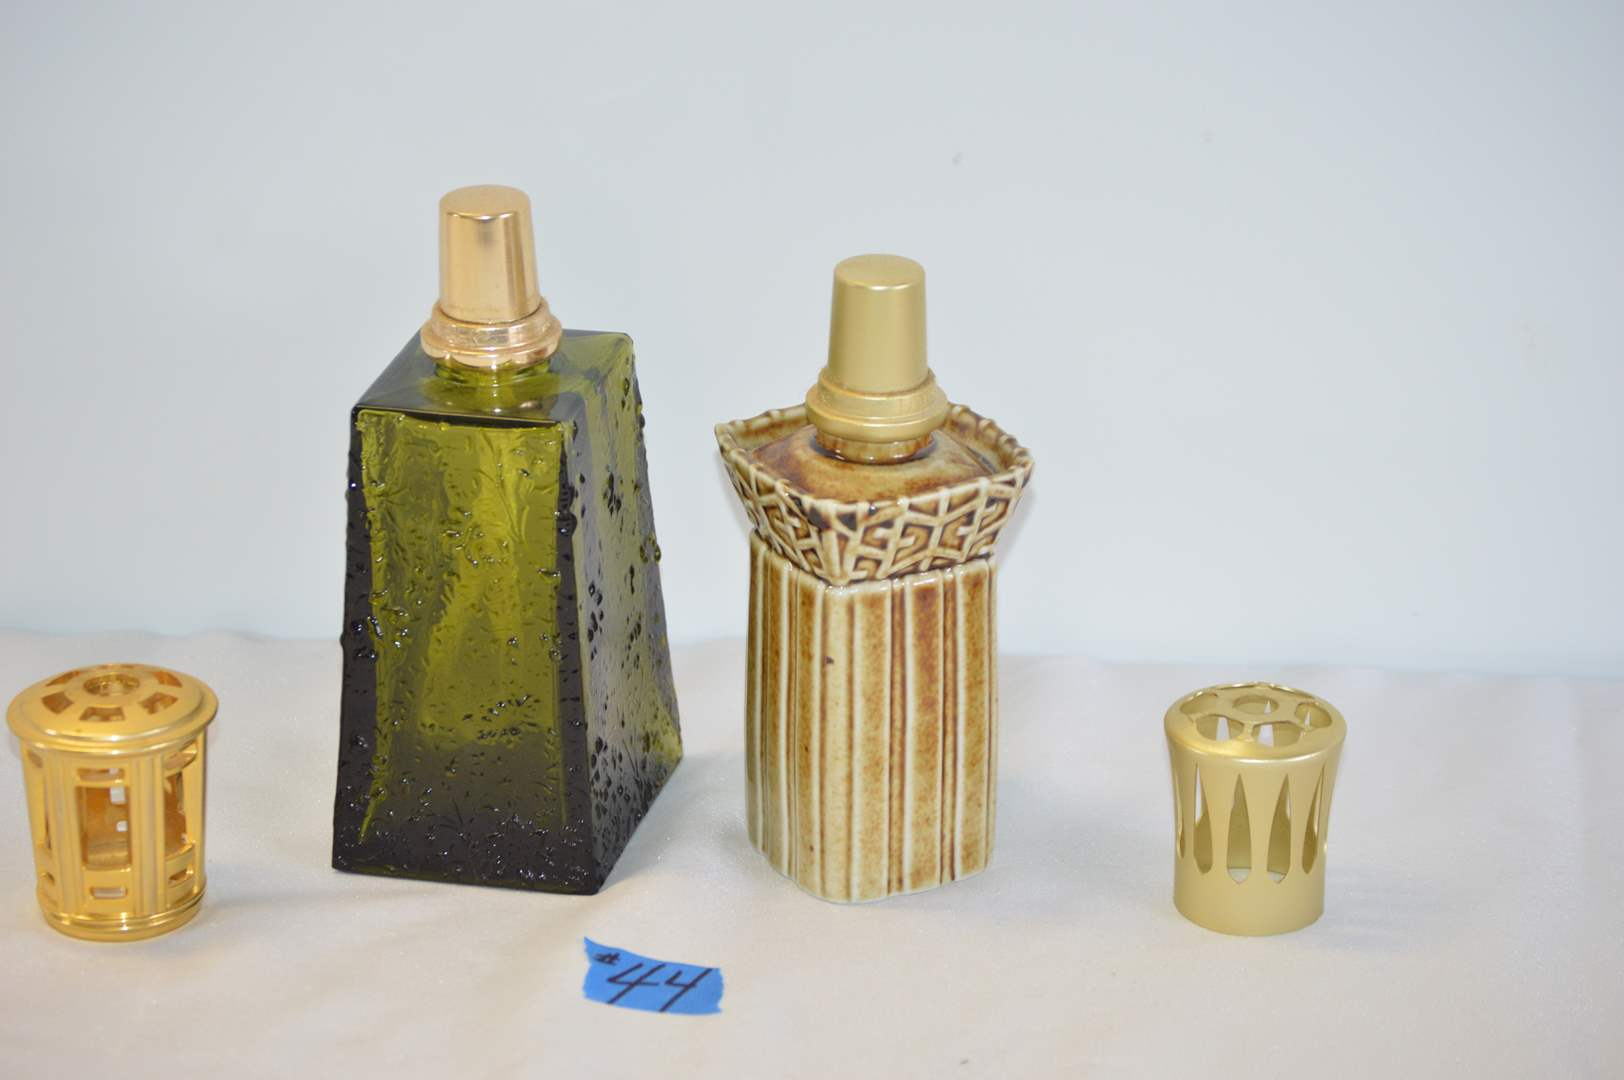 Lot # 44 2 Lampe Berger oil lamps - Made in France (main image)